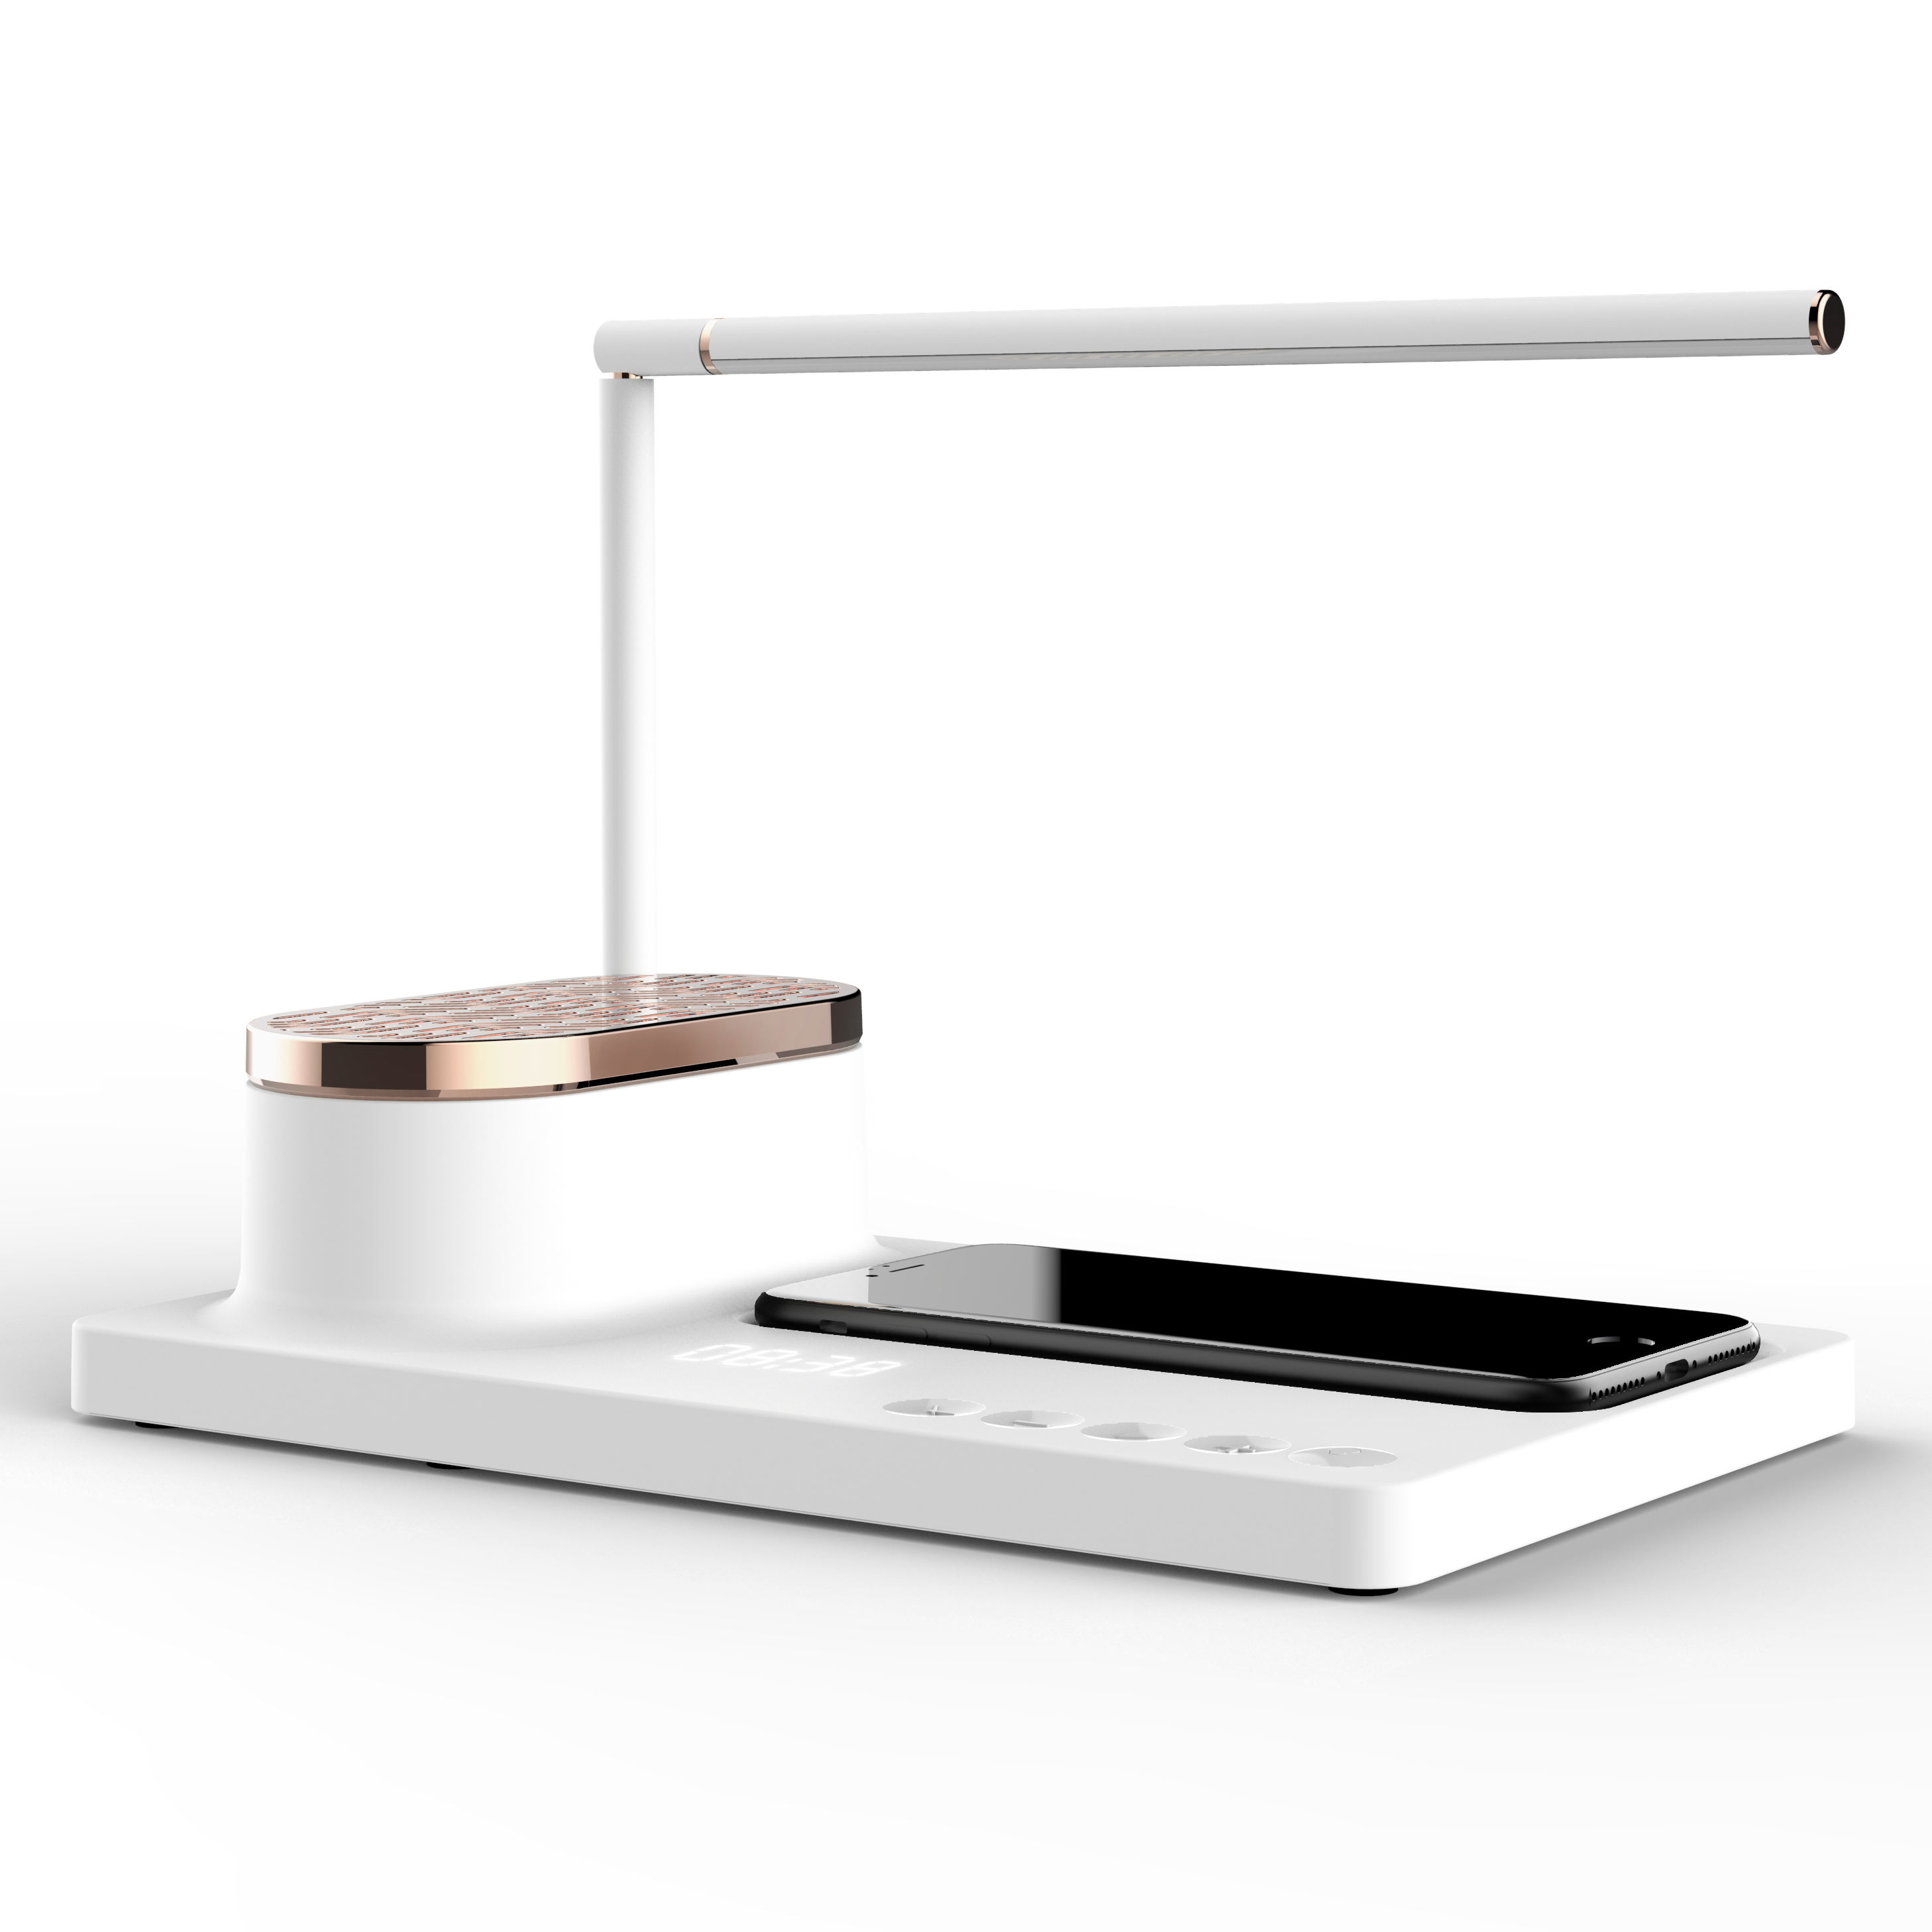 New arrival desk lamps wireless charger with BT speaker lamp light table